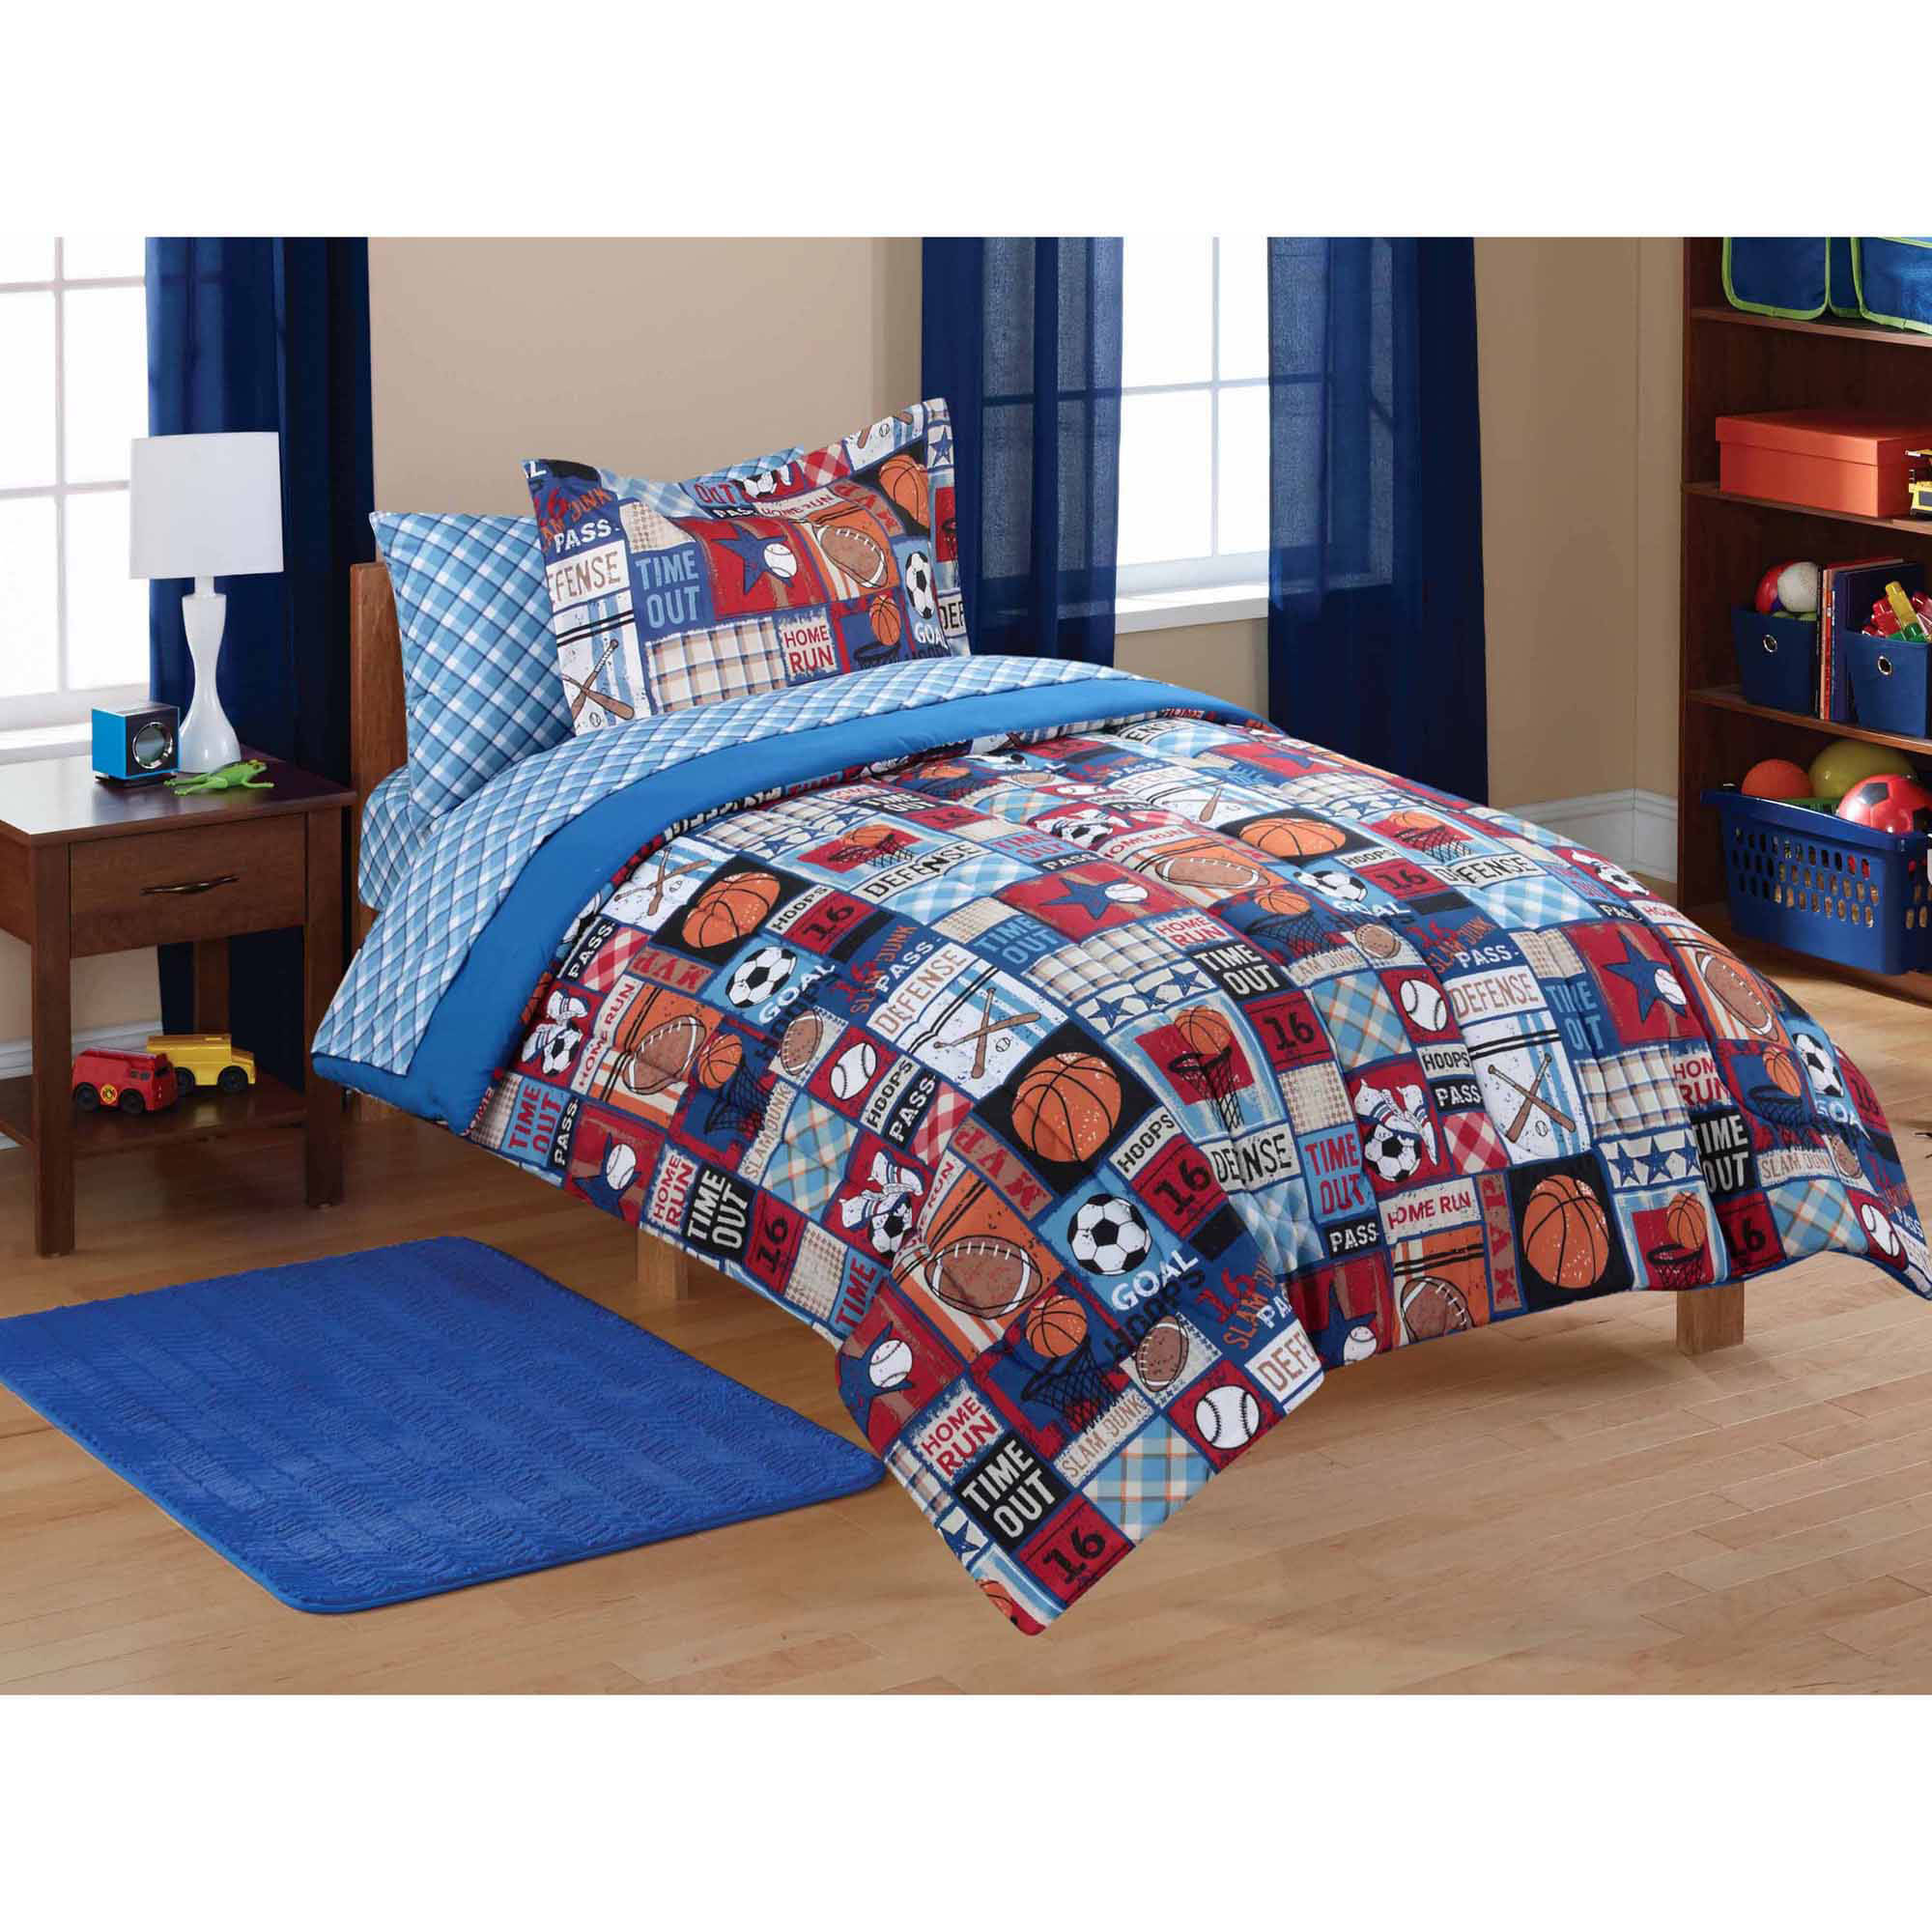 of boys images comforter themed kidstarget sets bedding boyskids full kidss for kids kidsorts size sports inspirations unforgettable extreme